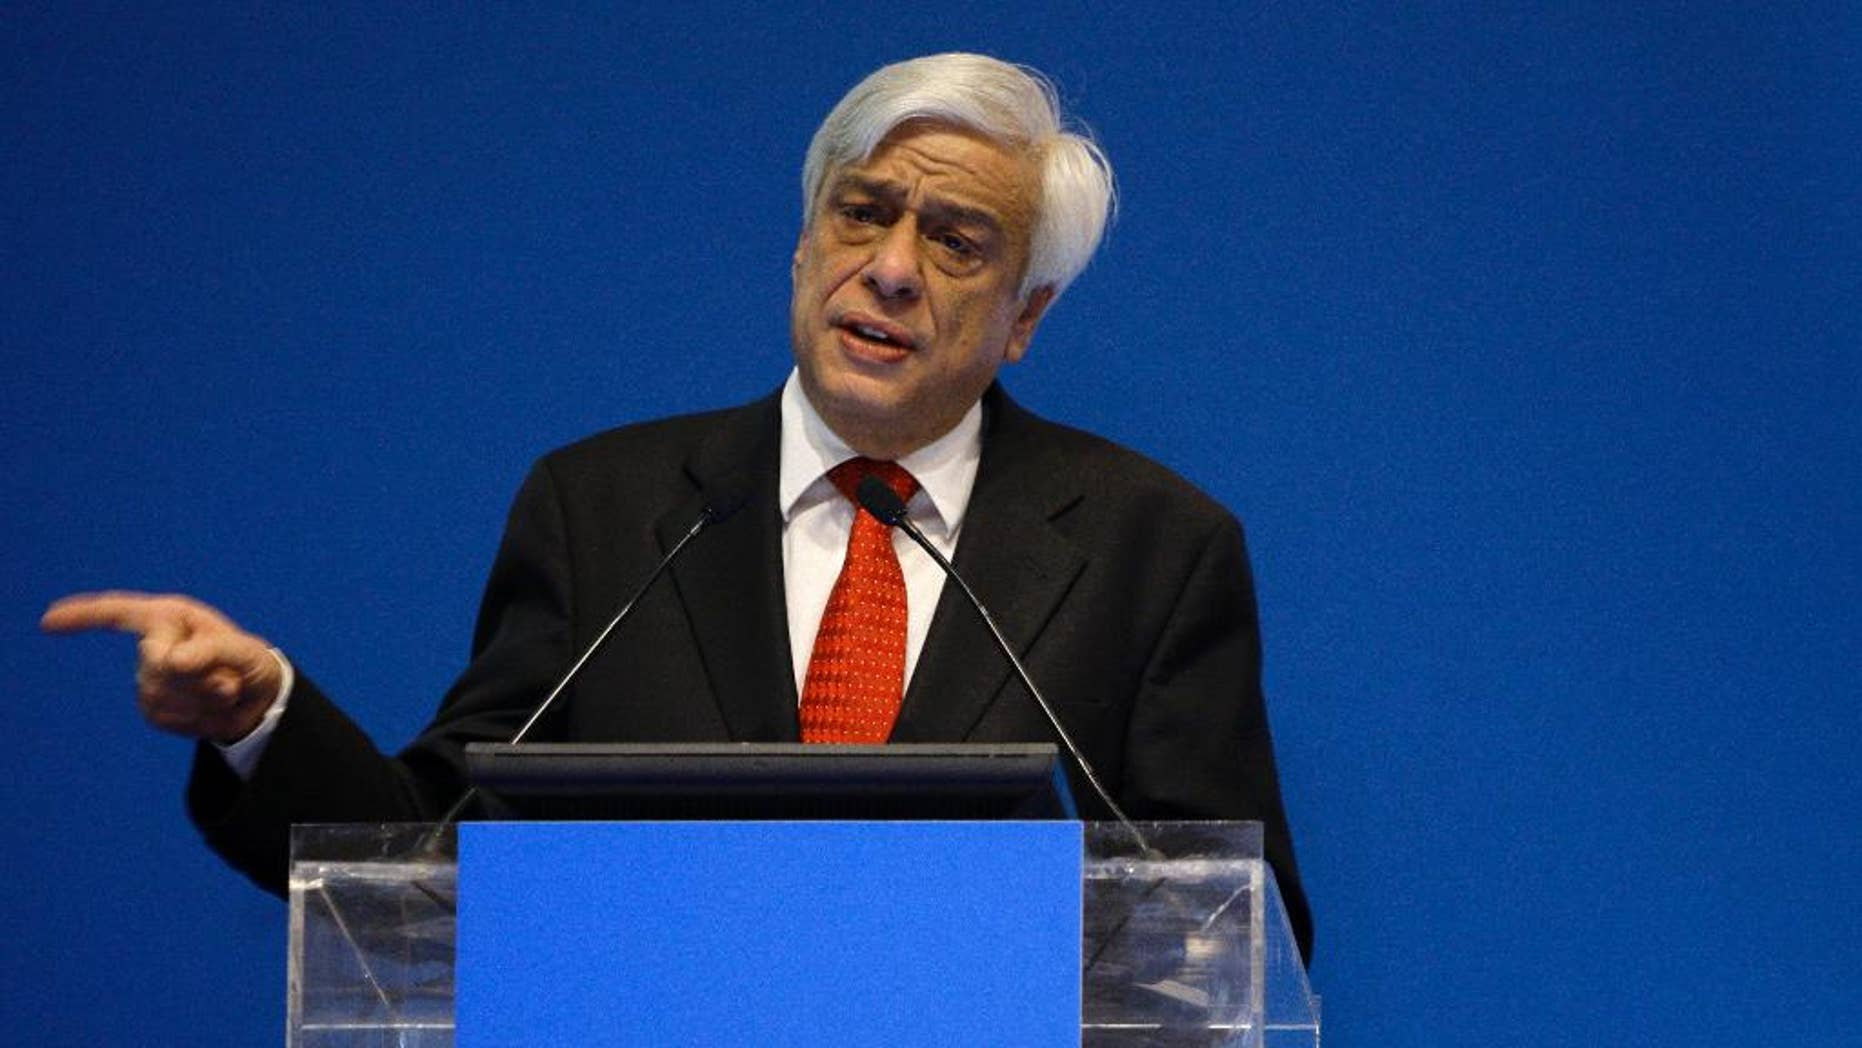 FILE - In this photo taken on Tuesday, March 17, 2009, Greek Interior Minister Prokopis Pavlopoulos speaks during Exposec international security conference, in Zappeion hall, Athens. Greece's Prime Minister Alexis Tsipras announced on Tuesday, Feb. 17, 2015 that his party would endorse former conservative interior minister Prokopis Pavlopoulos as candidate for the country's new president. (AP Photo/Petros Giannakouris, File)